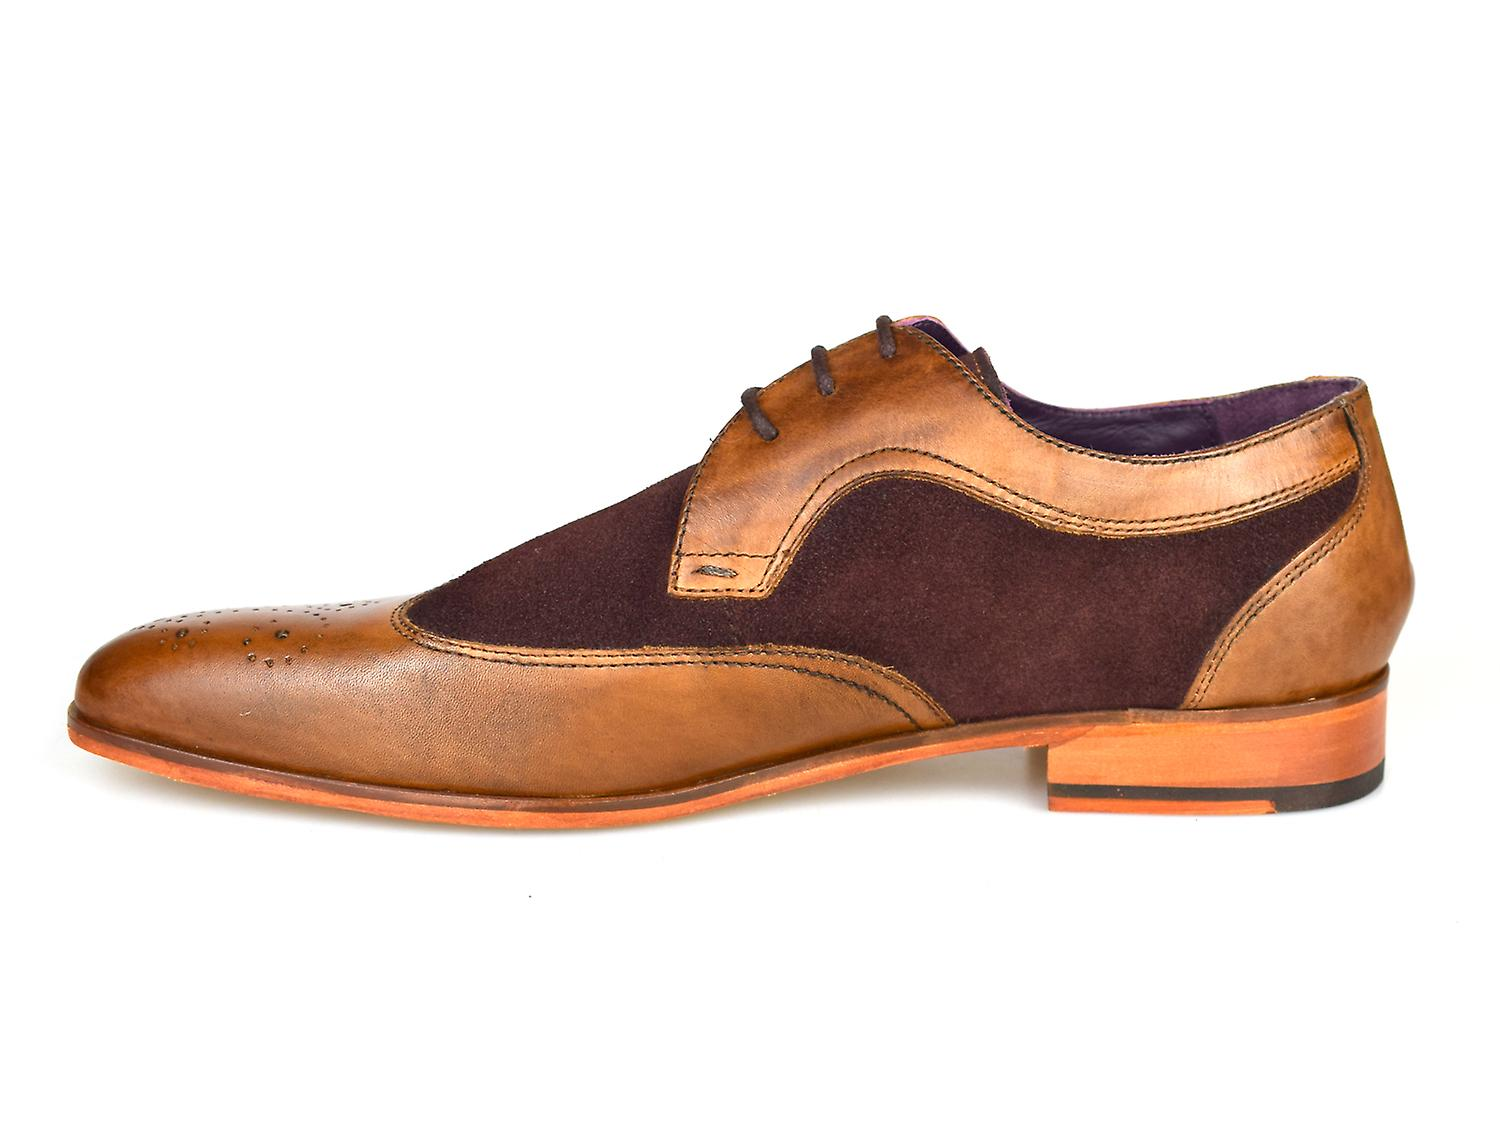 Gucinari Lansky Tan & Brown Leather Formal Brogue Shoes AMP16-1